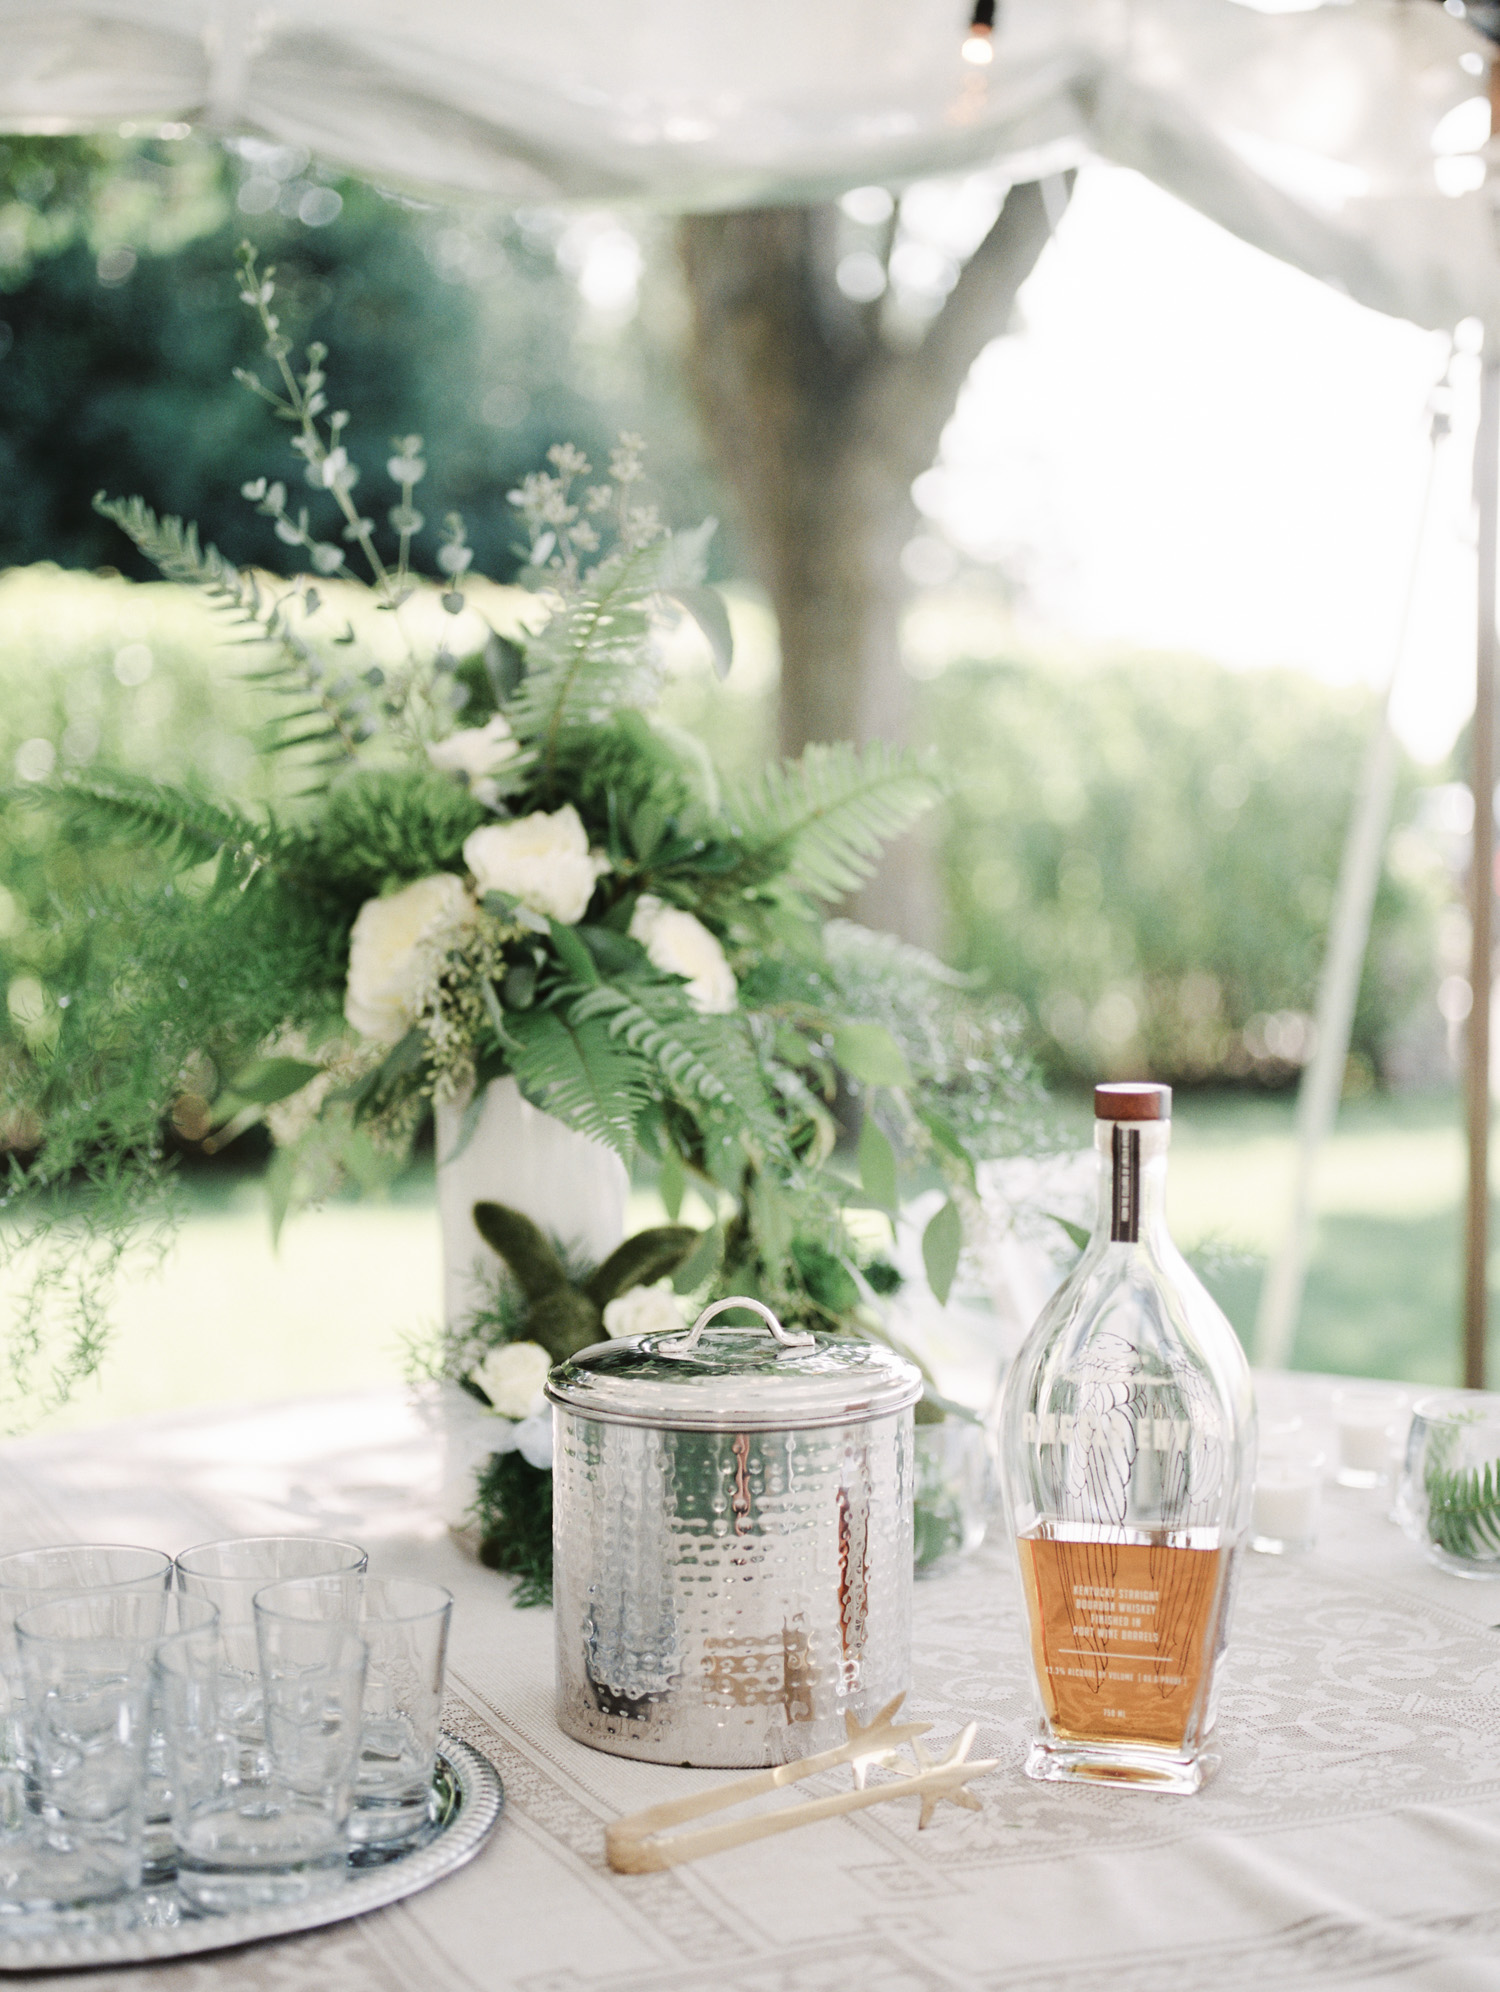 A floral arrangement with greenery and ferns rests on a table with a bottle of whiskey in Northern Michigan